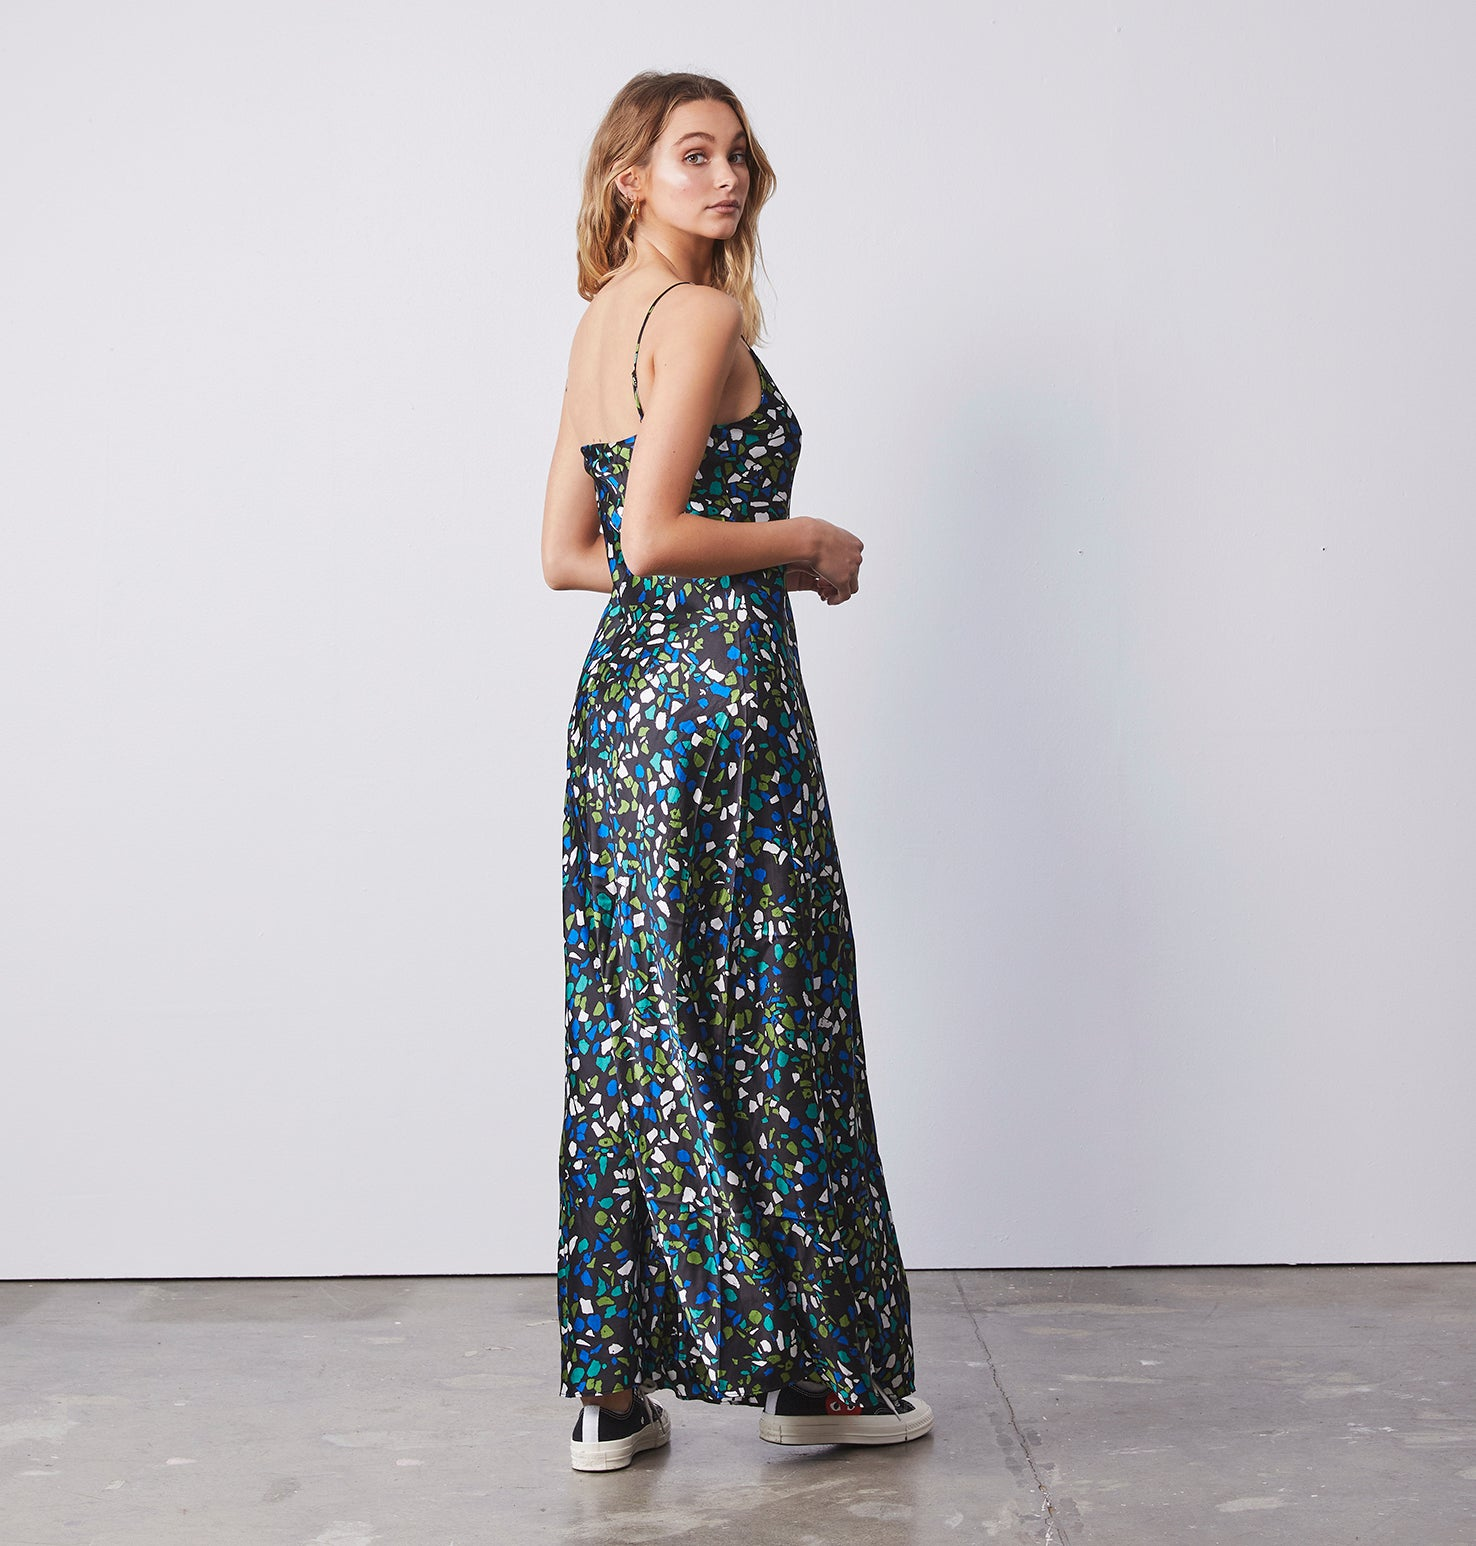 Clare Slip Long Dress - Terrazzo Blue/Green